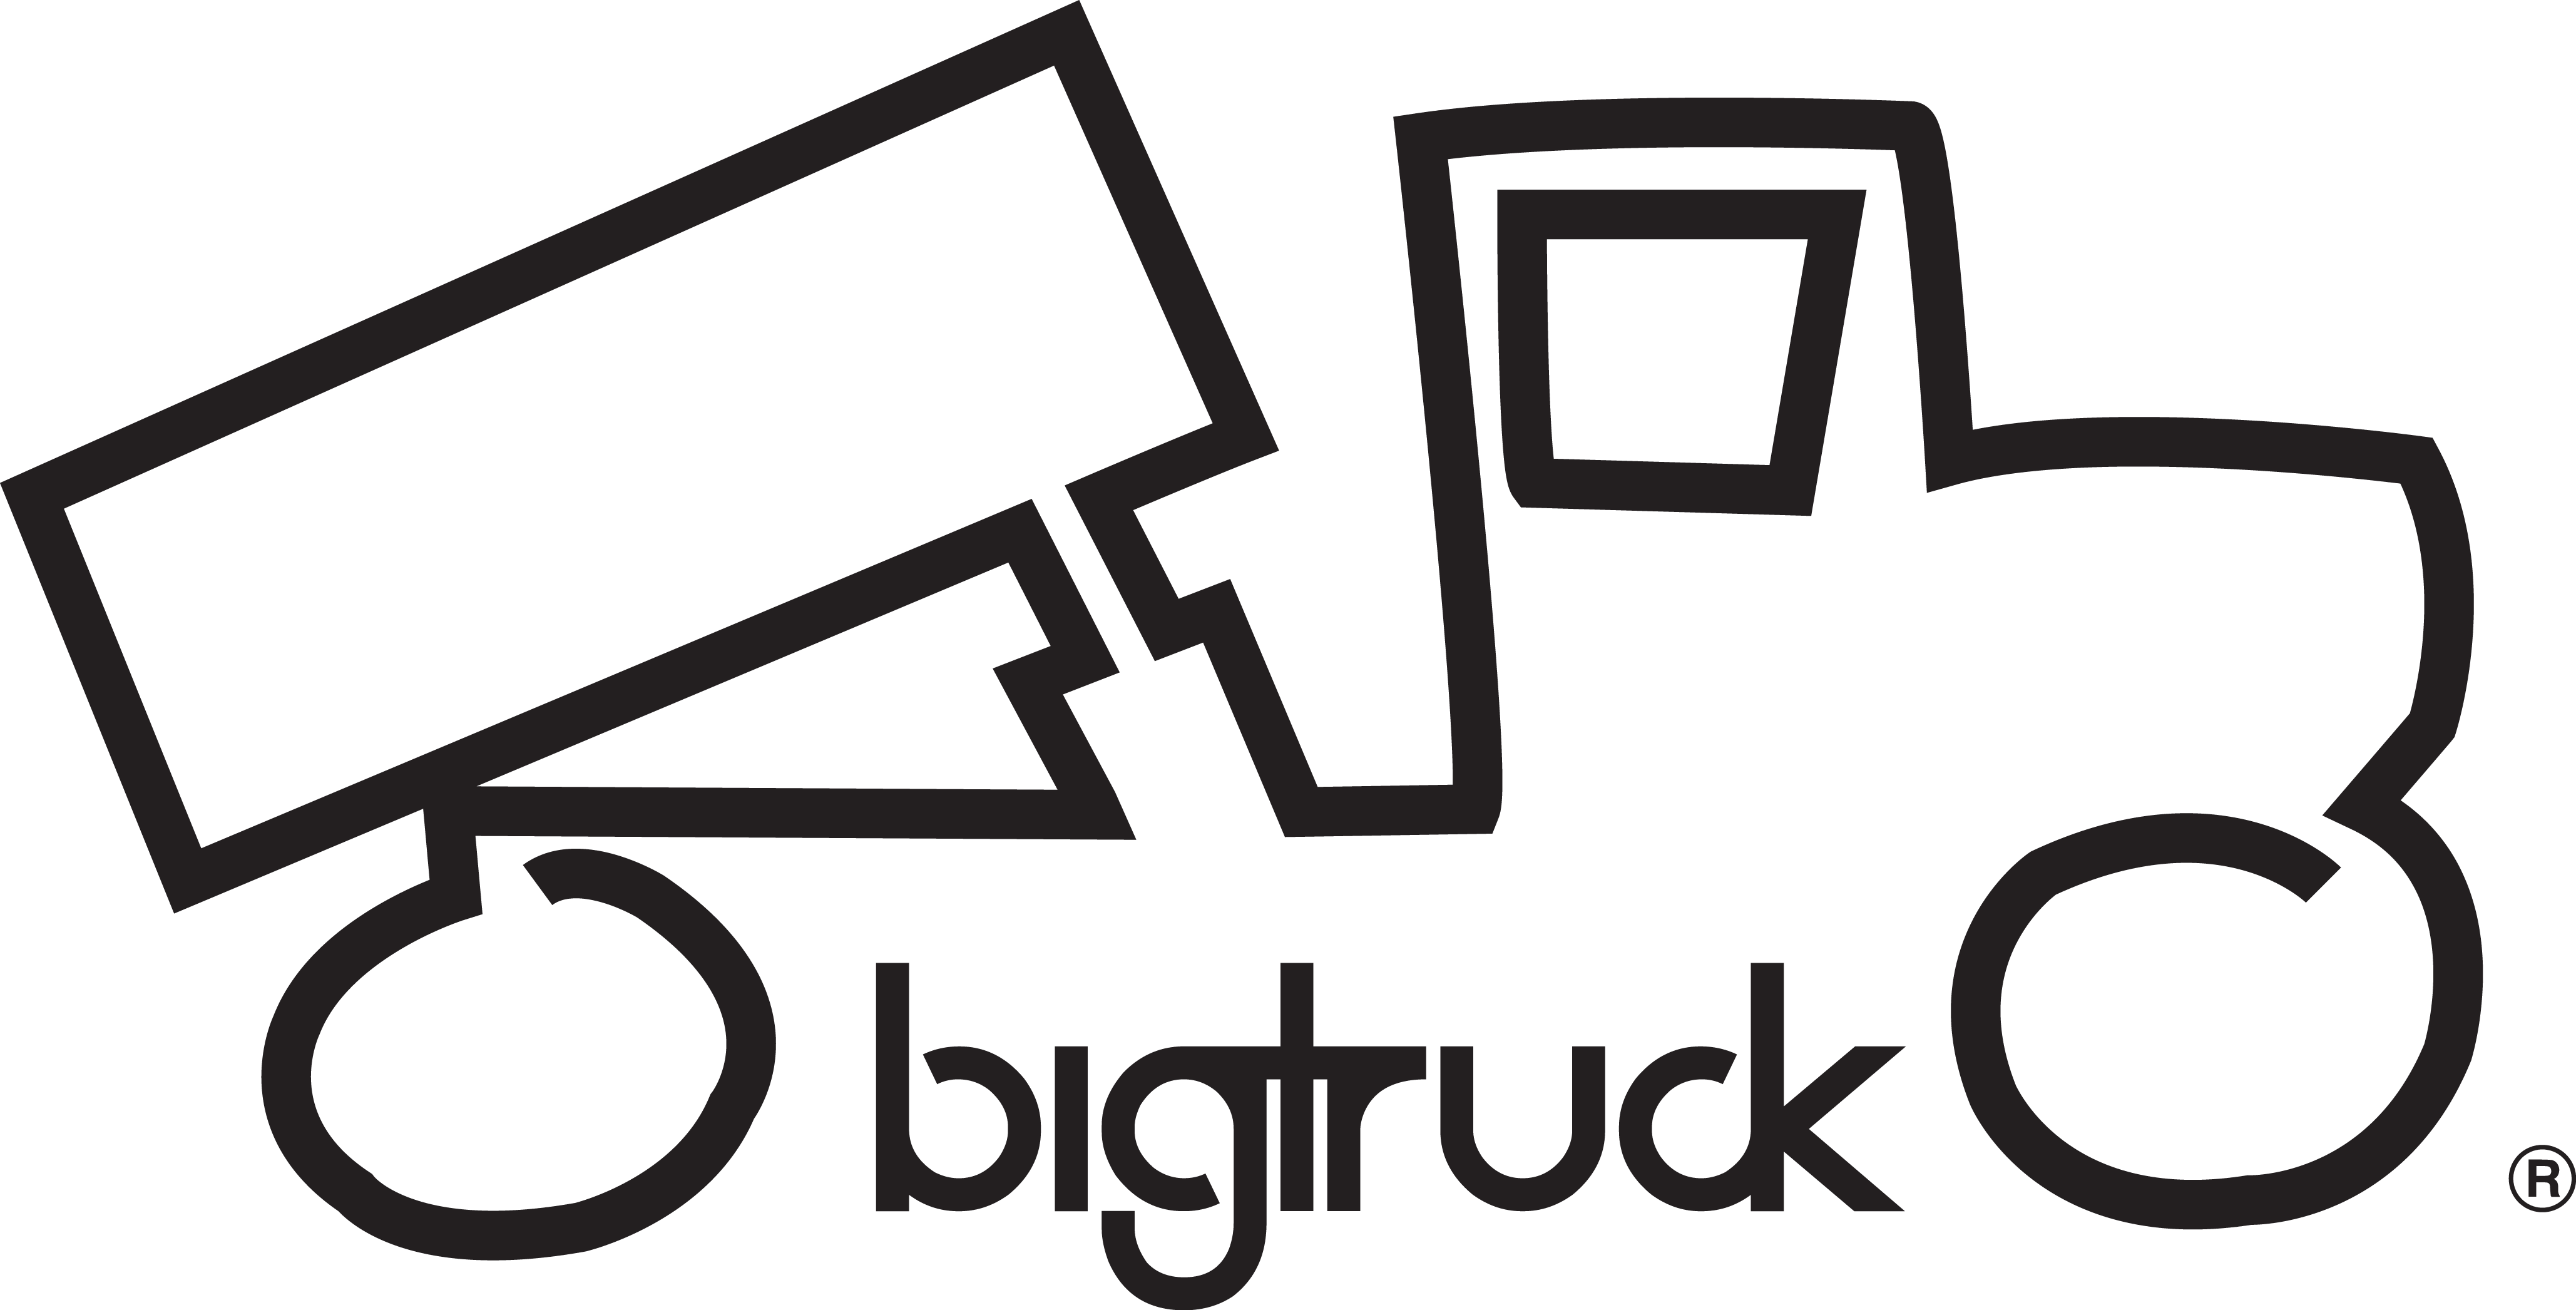 Logo for bigtruck®